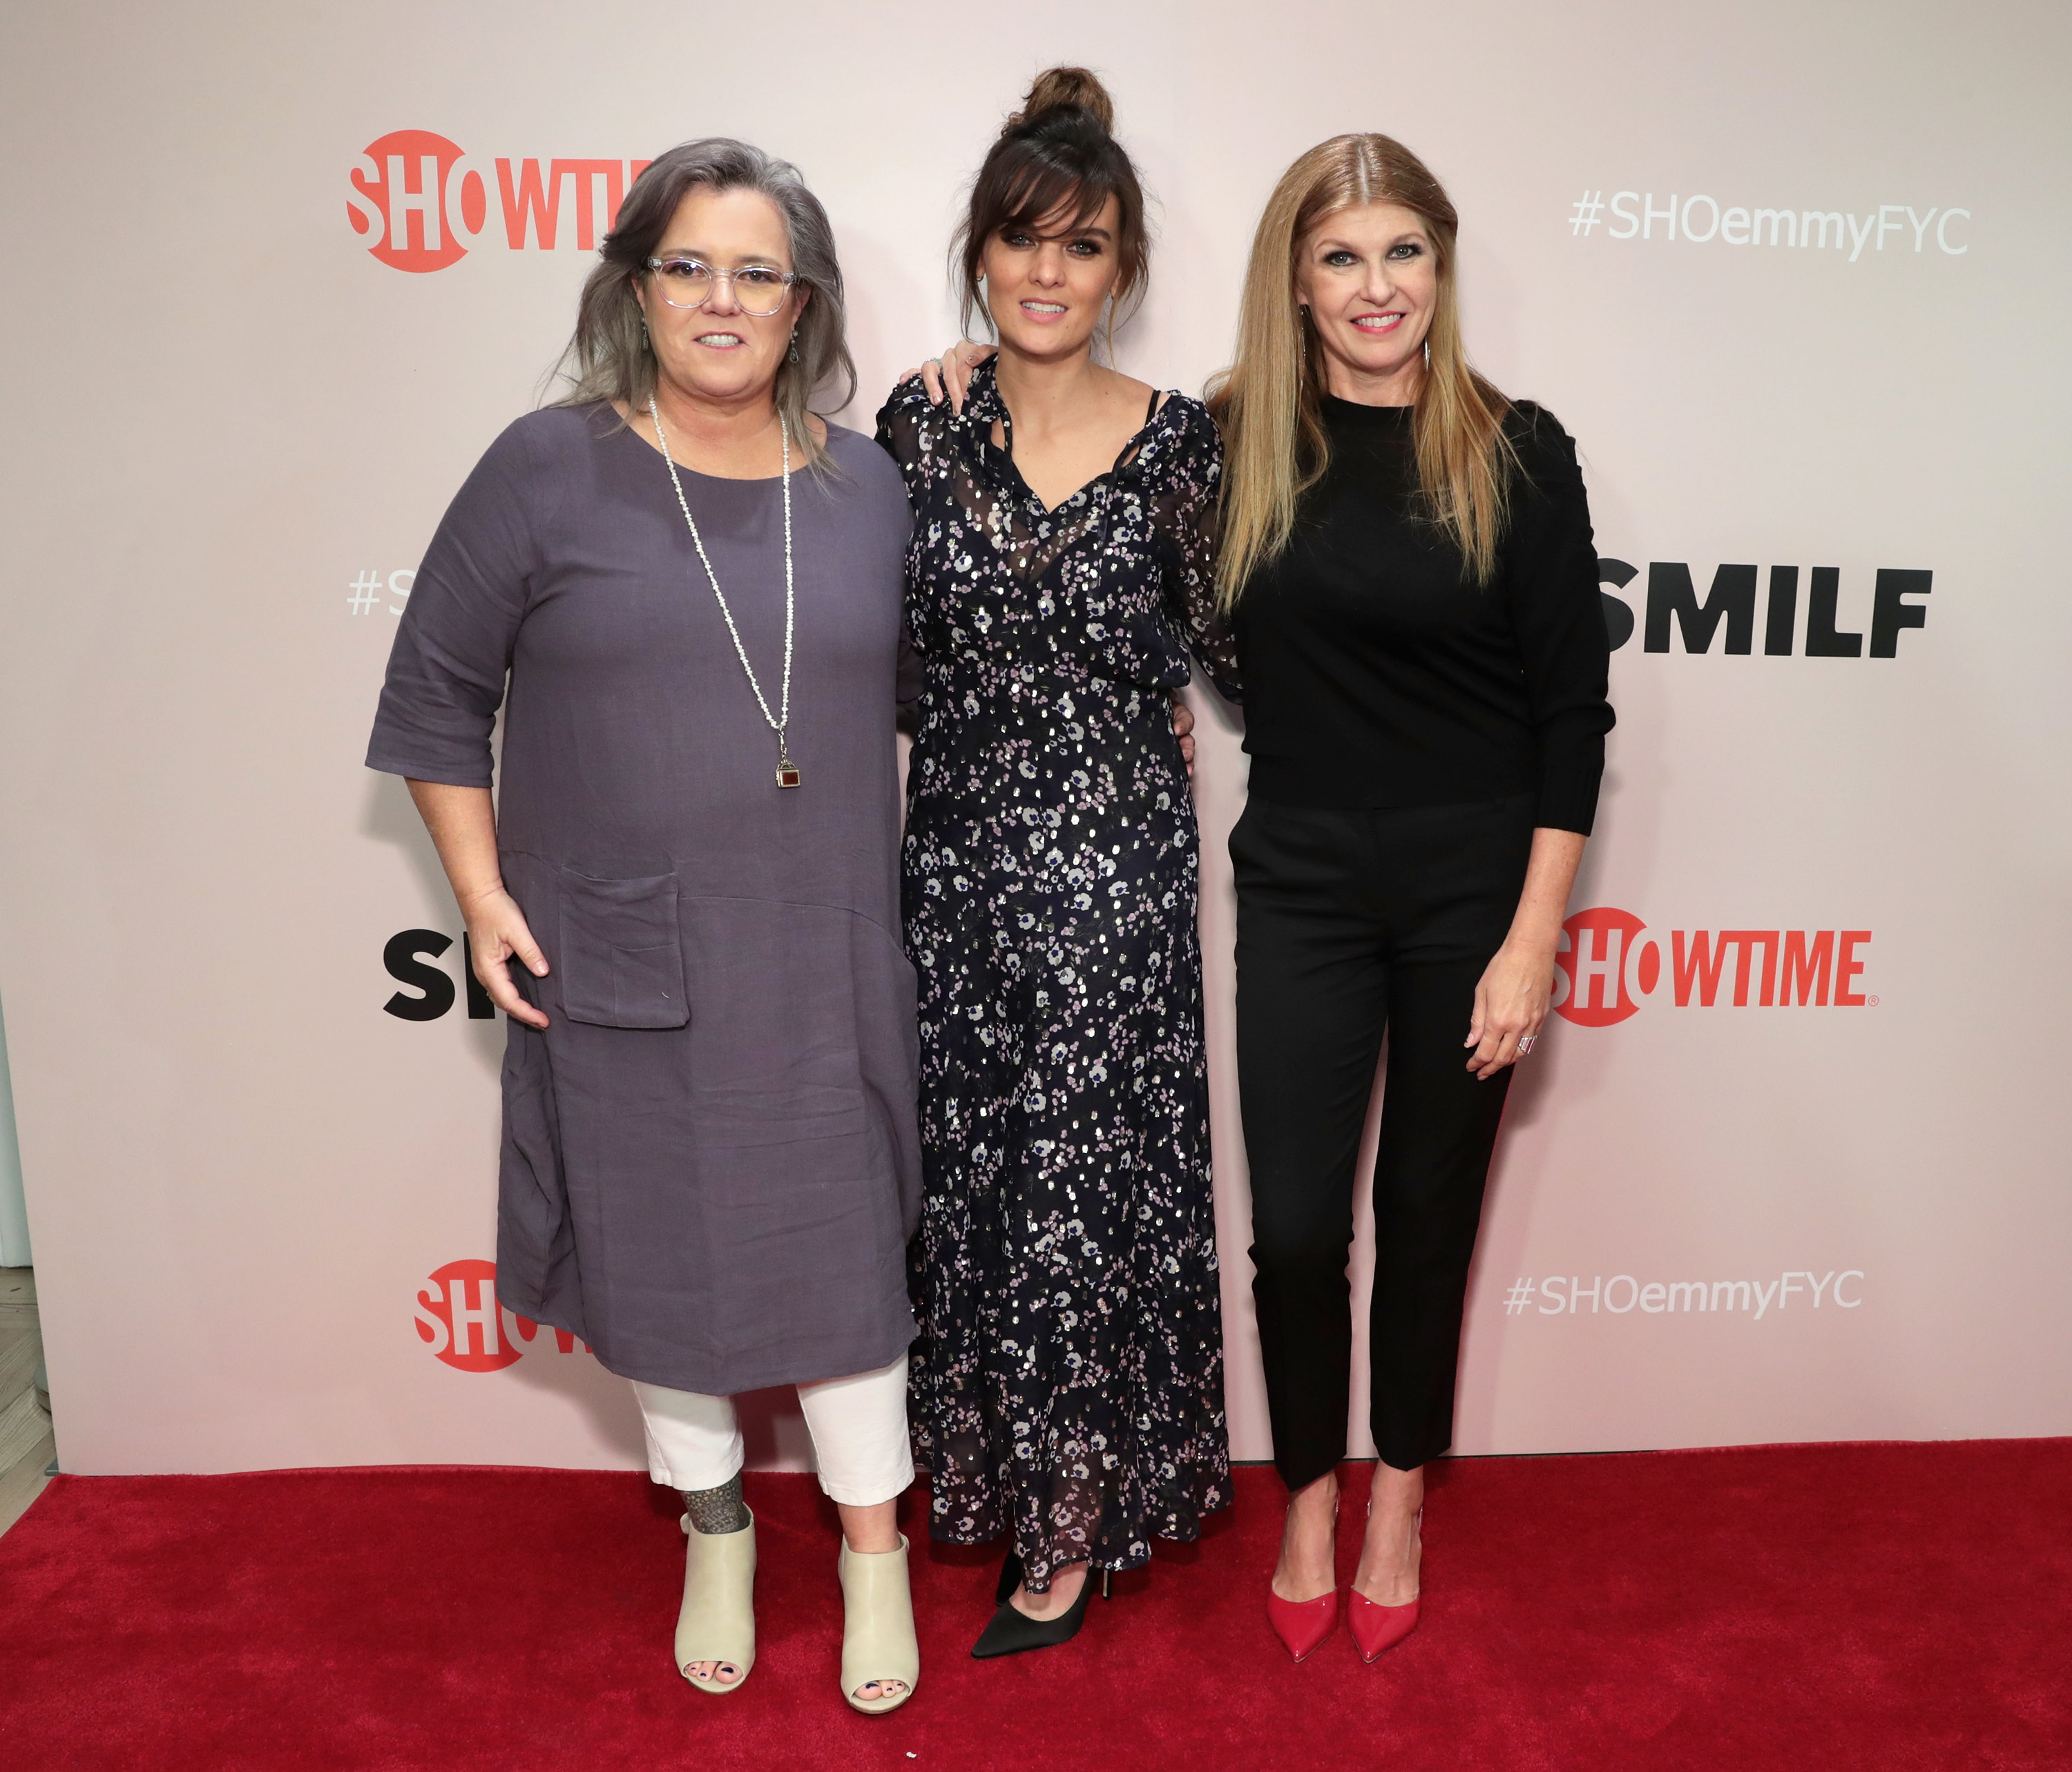 Actresses Rosie O'Donnell, Frankie Shaw and Connie Britton attend the Showtime Emmy FYC Screening of SMILF at The Whitney Museum on May 8, 2018 in New York City.